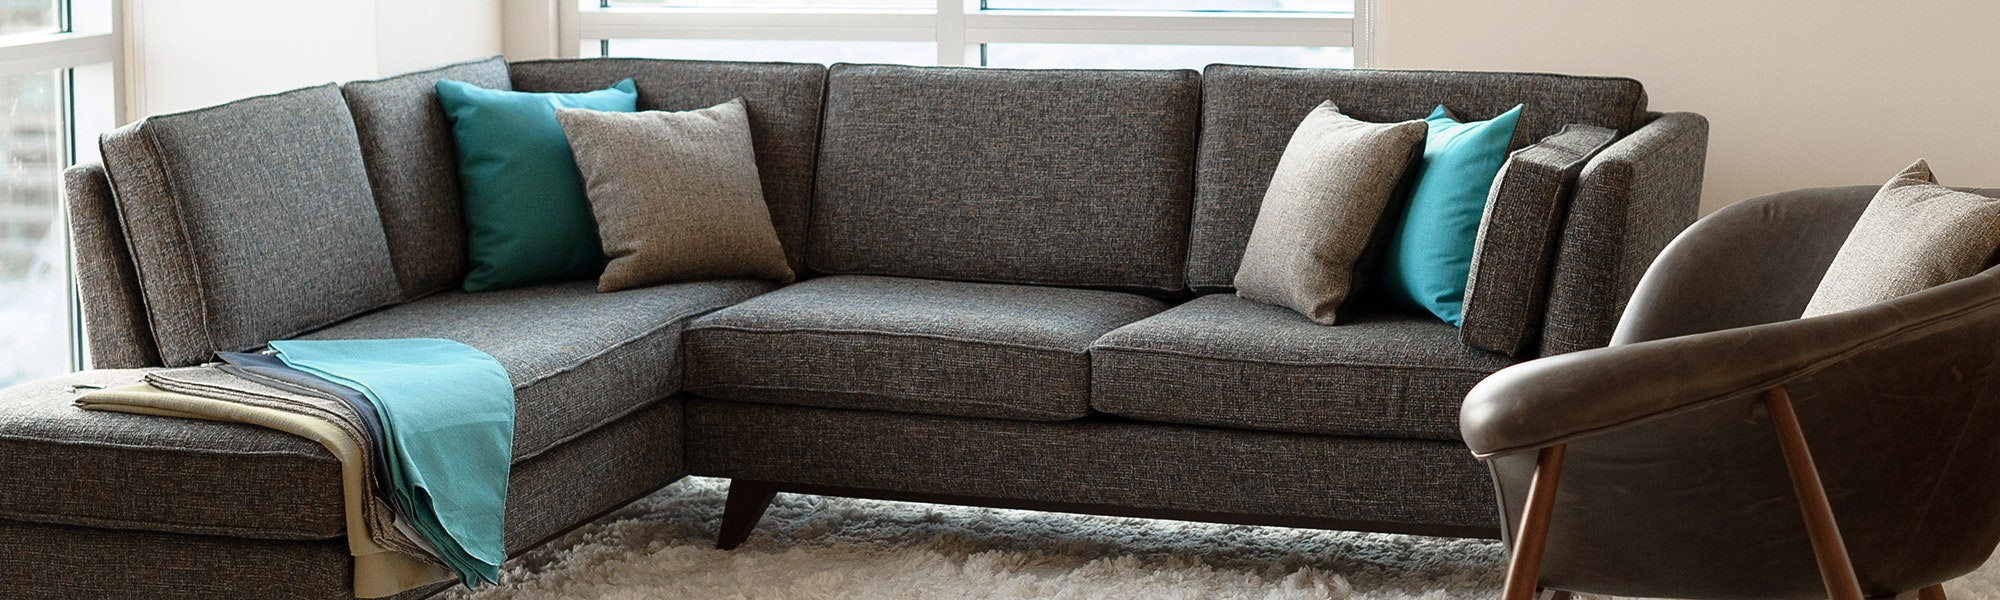 Professional Upholstery Cleaning Burswood